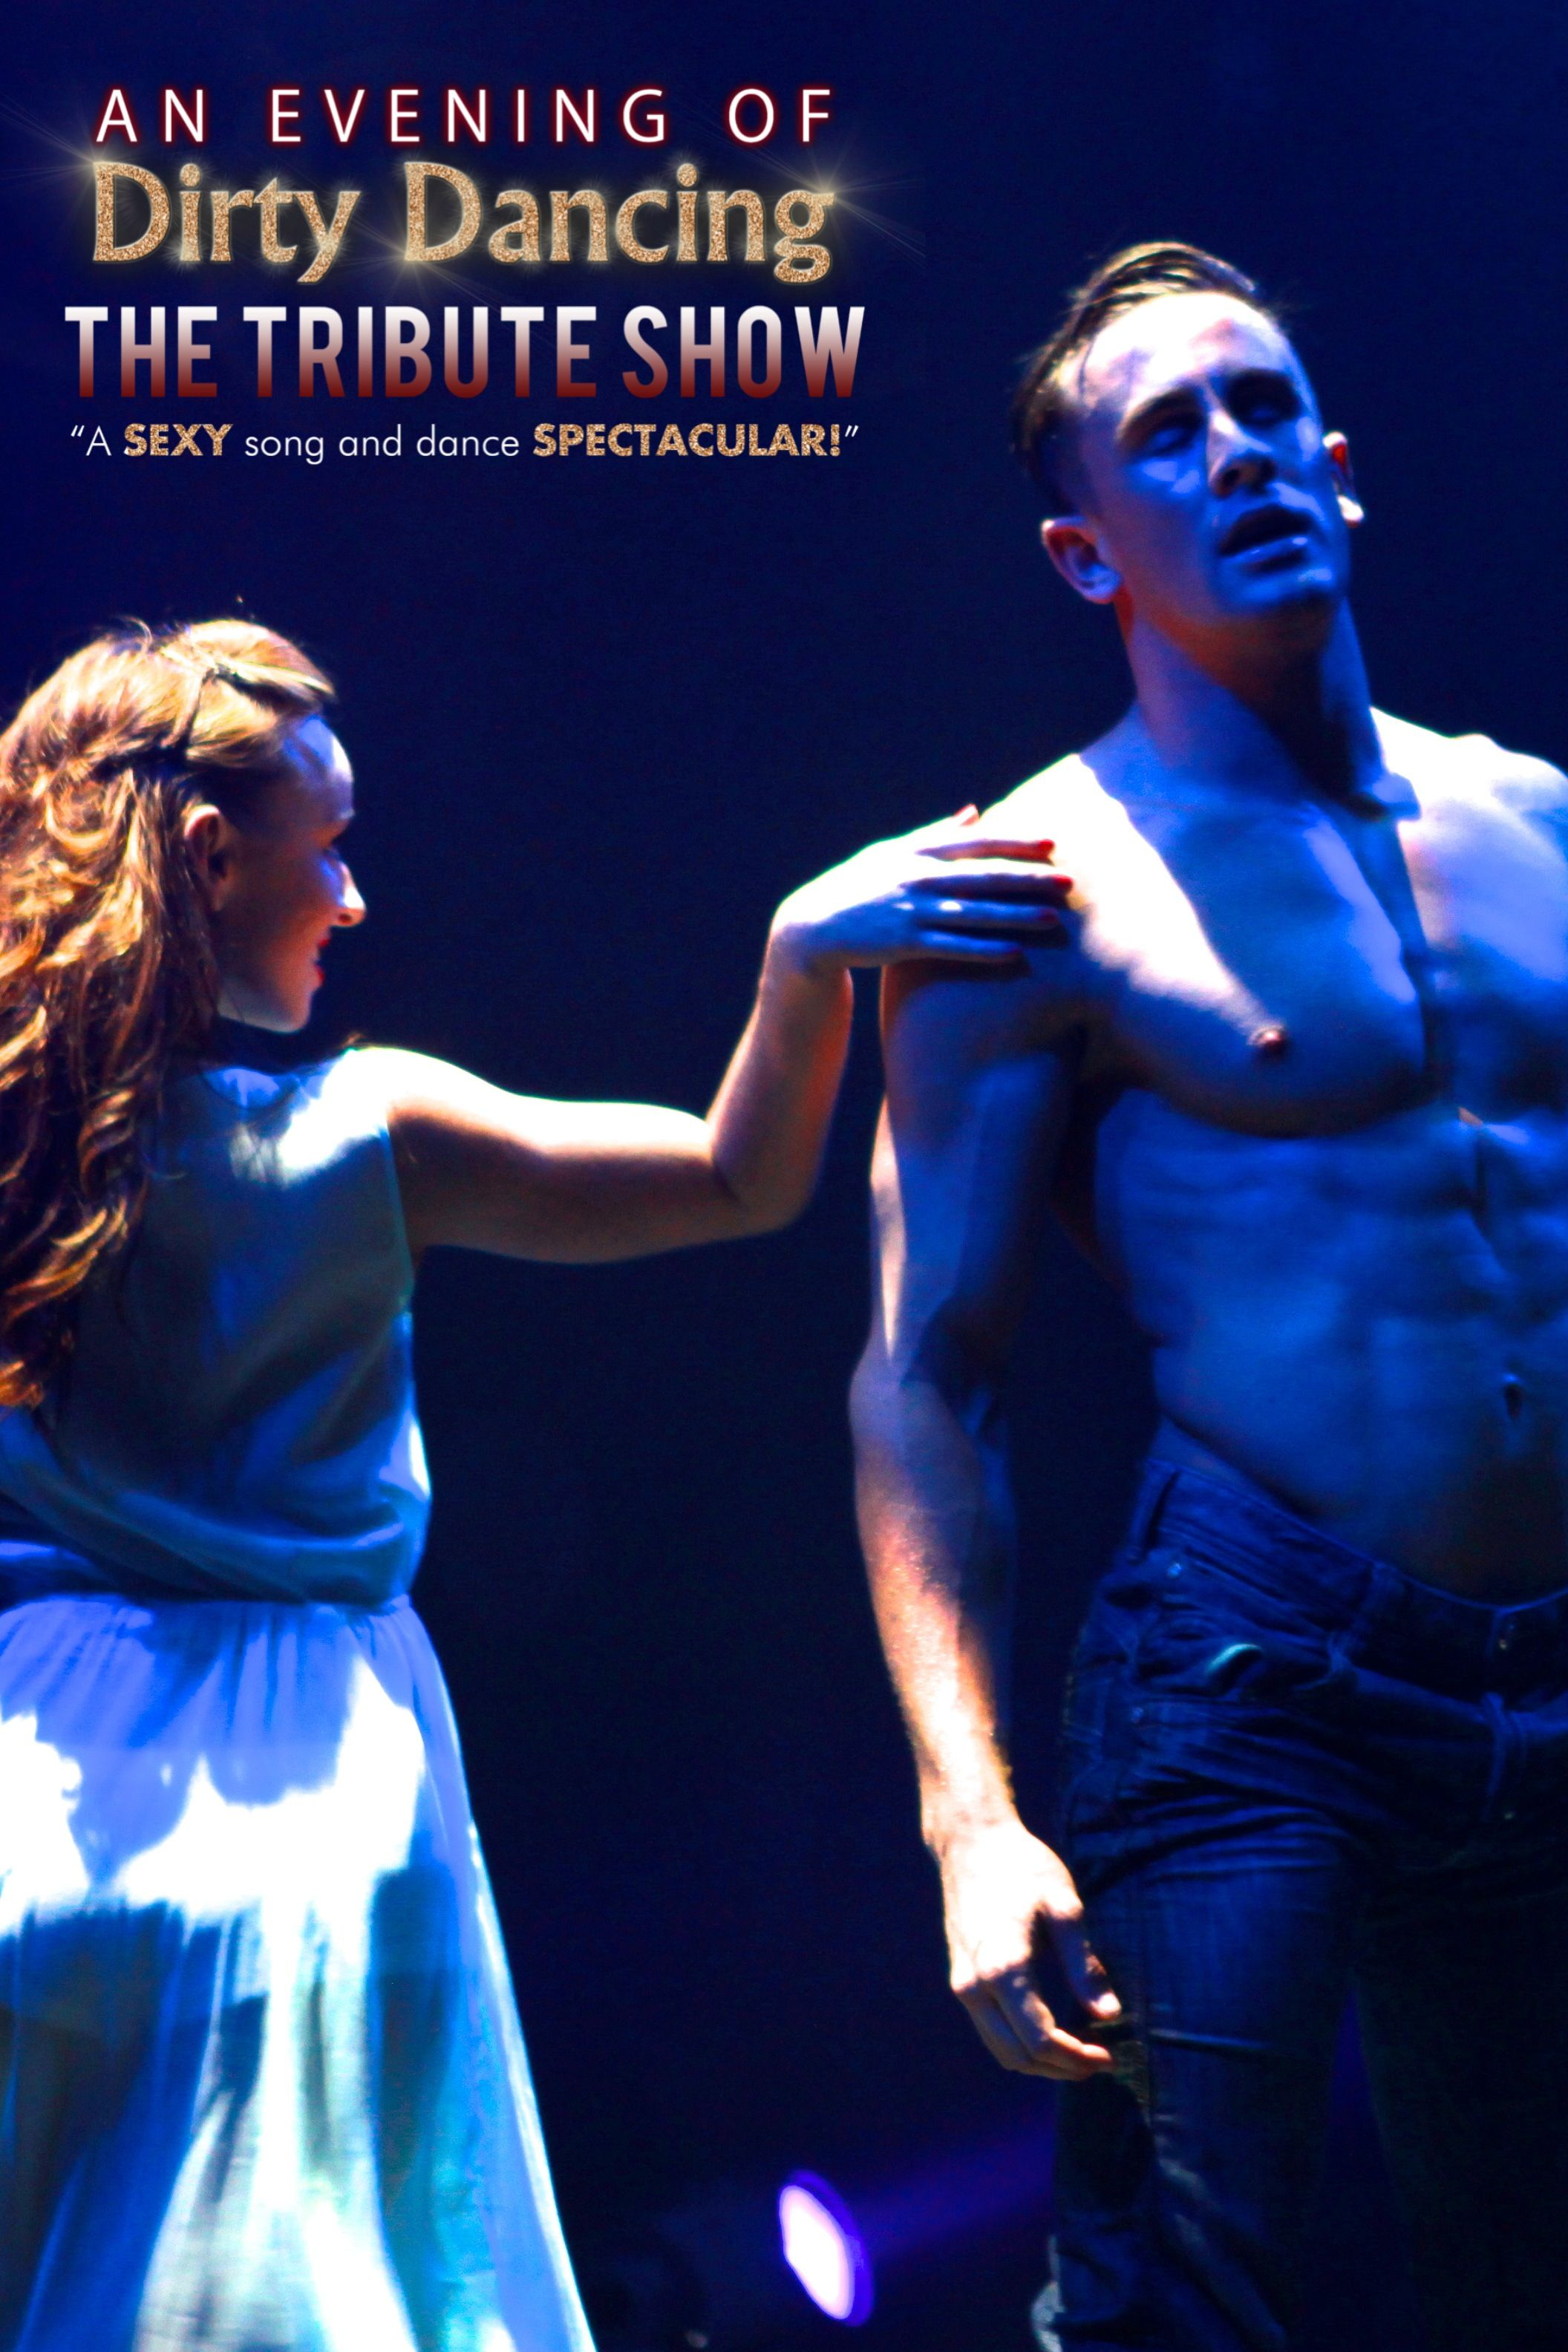 An evening of Dirty Dancing - returns in 2014! book today